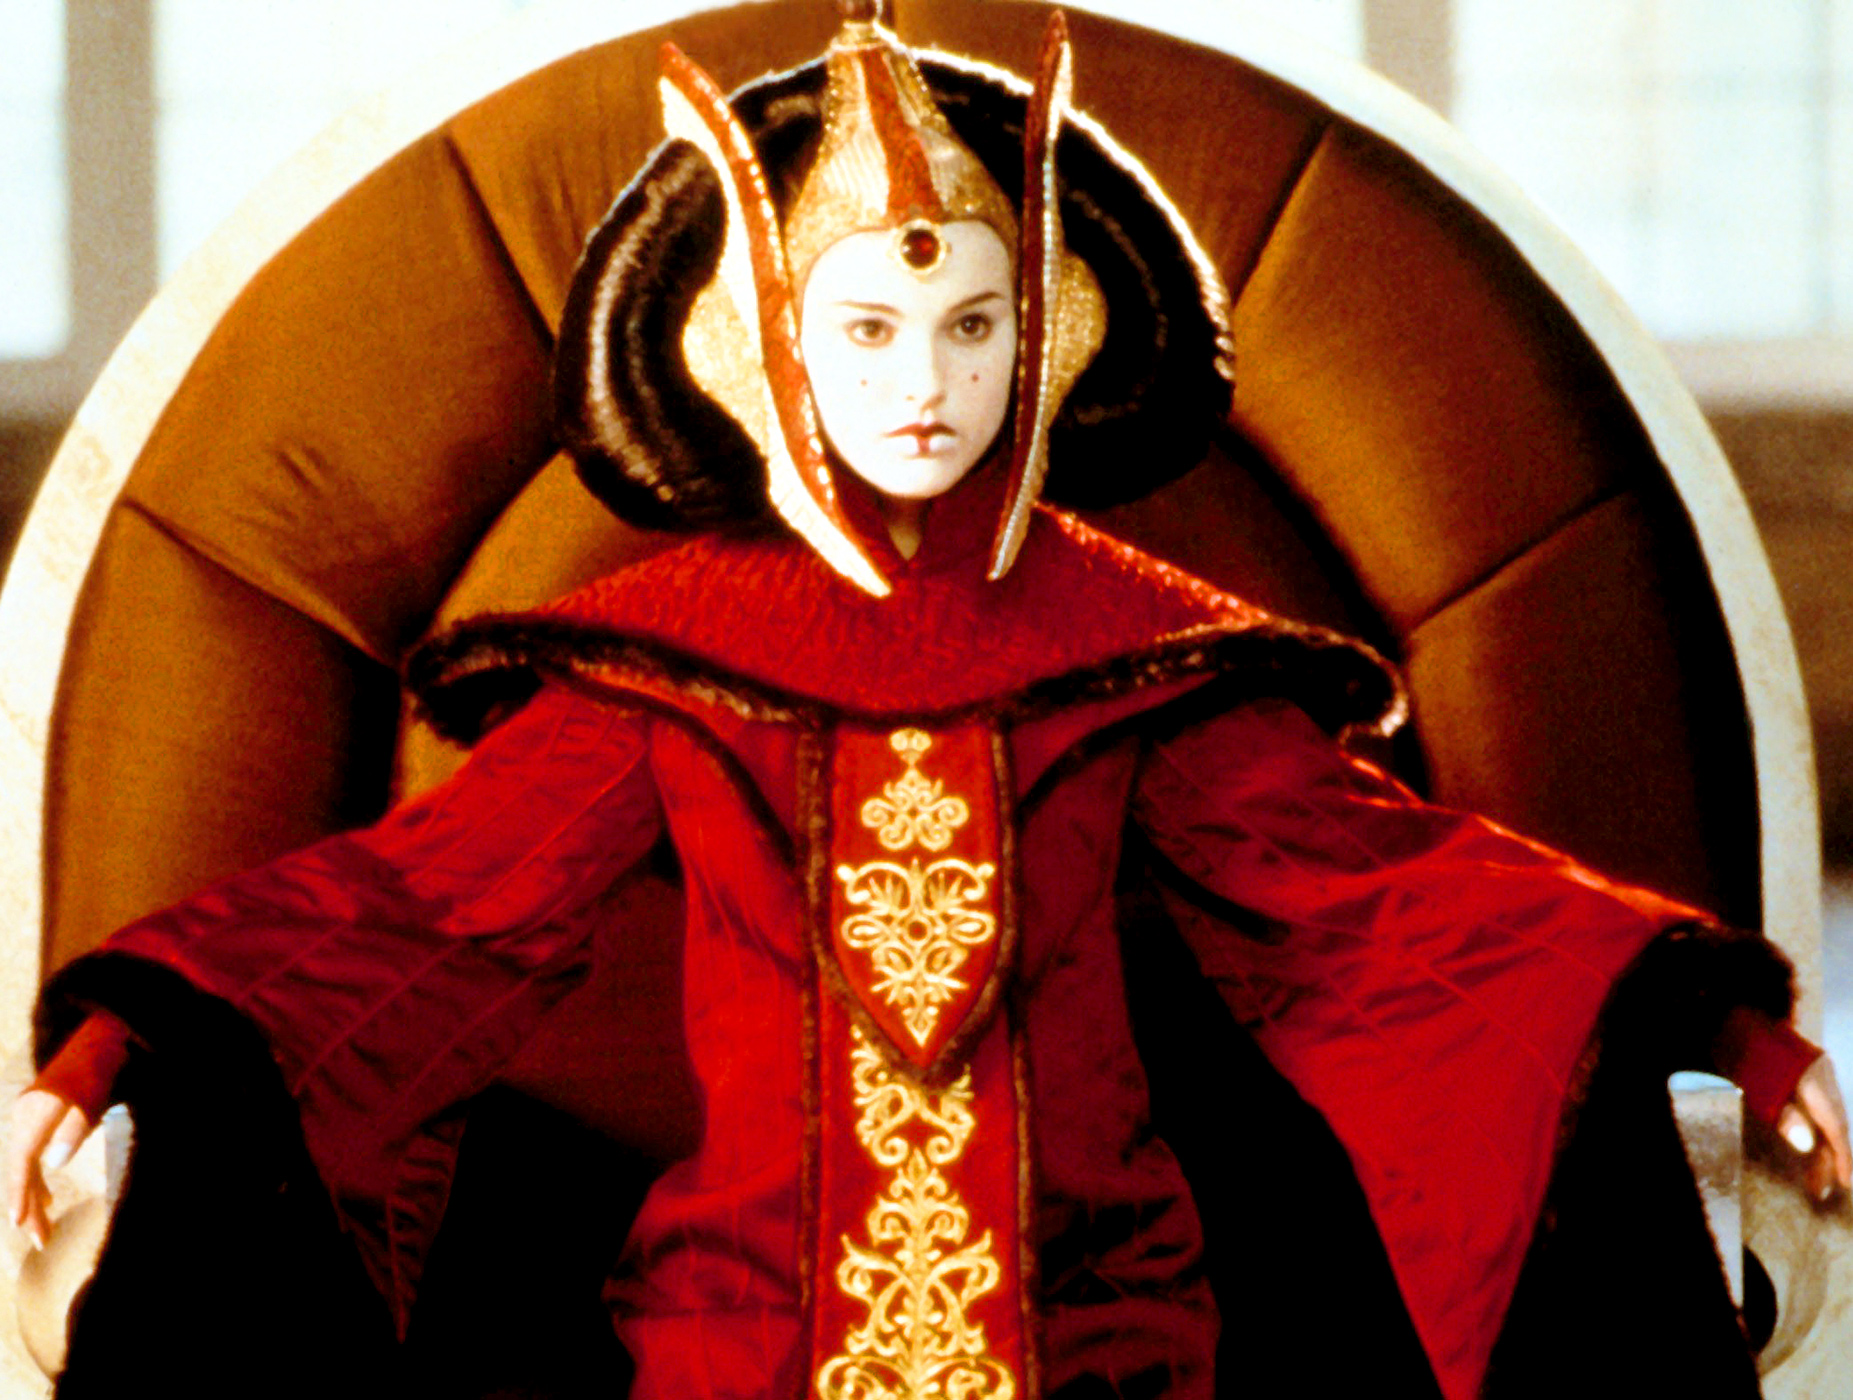 In 1999, the future Oscar winner played Princess Padme Amidala in Star Wars: The Phantom Menace . Portman 's character also appeared in Star Wars: Attack of the Clones and Star Wars: Revenge of the Sith .